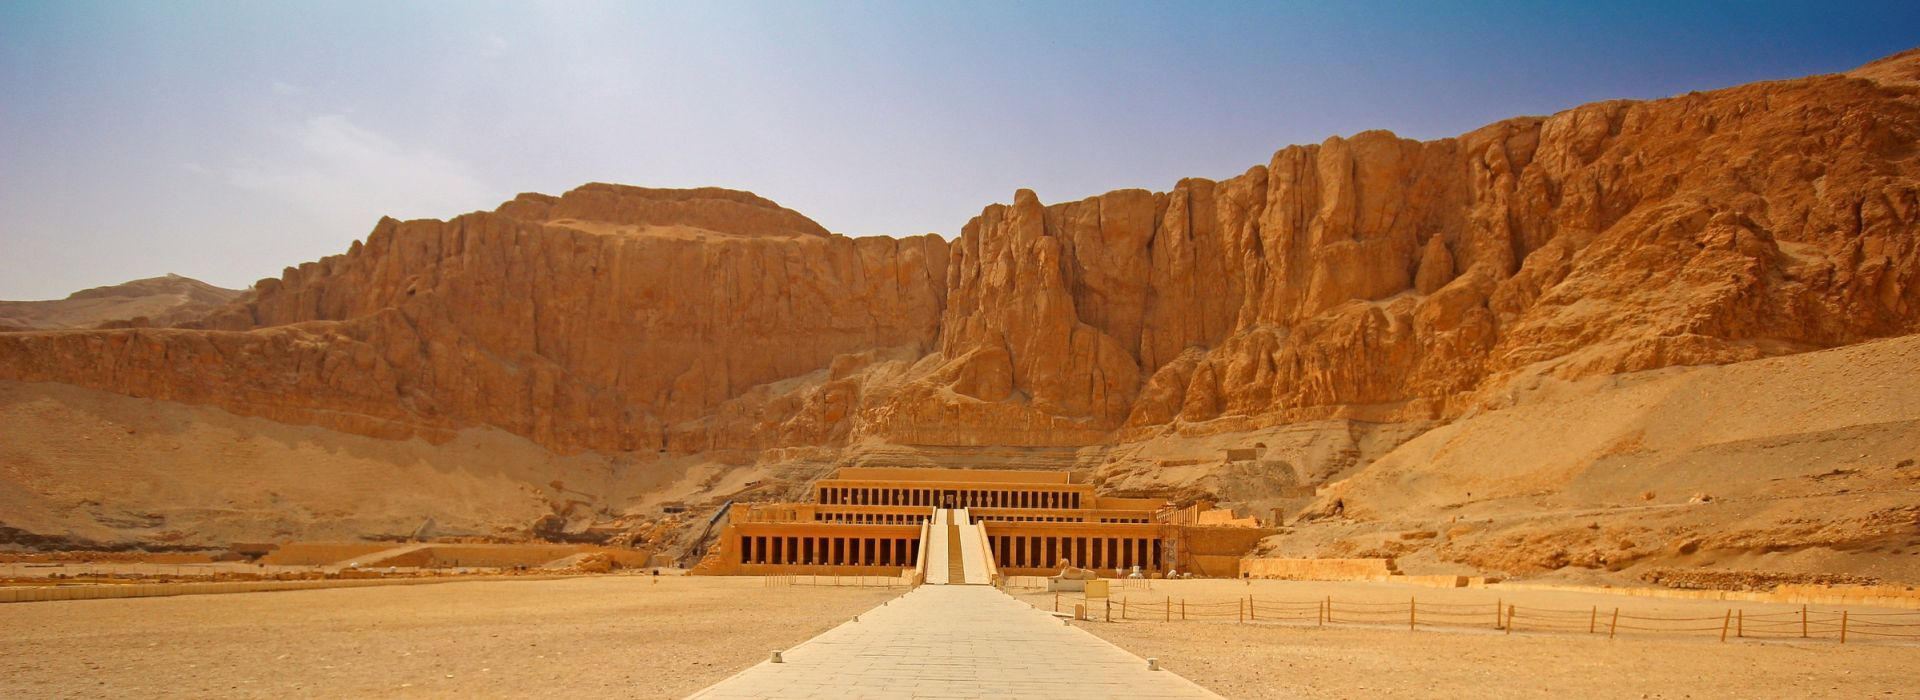 Deserts and canyons Tours in Egypt